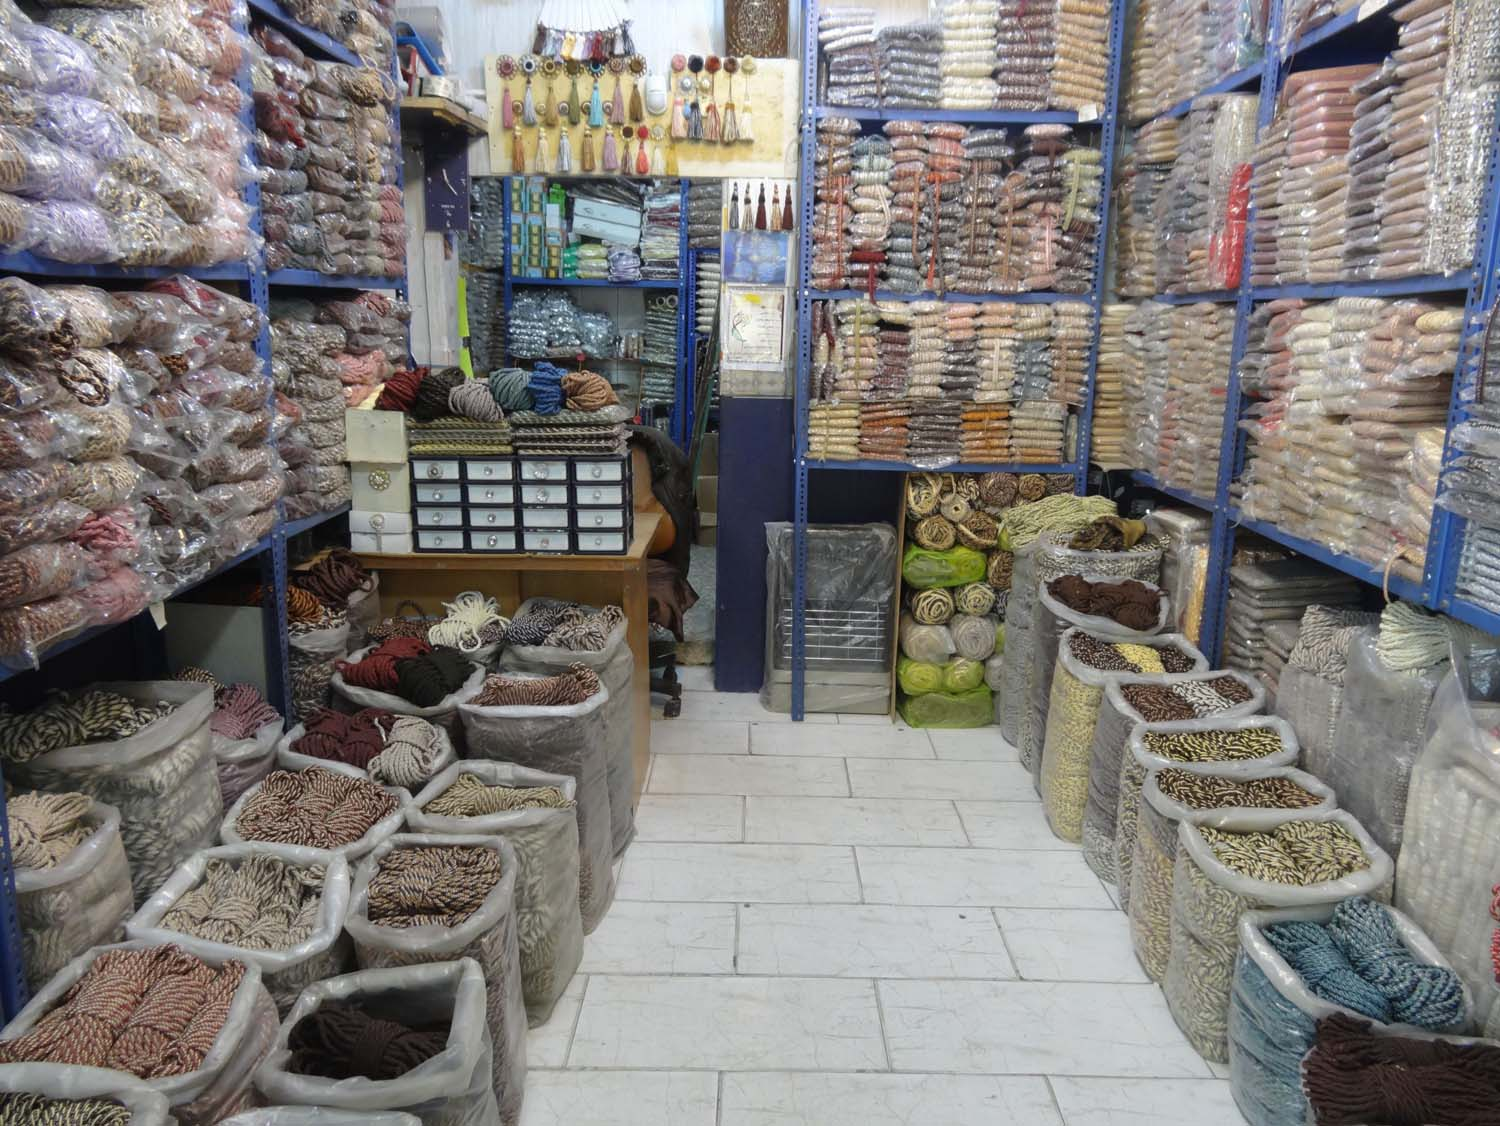 this shop only sells rope, it looked beautiful